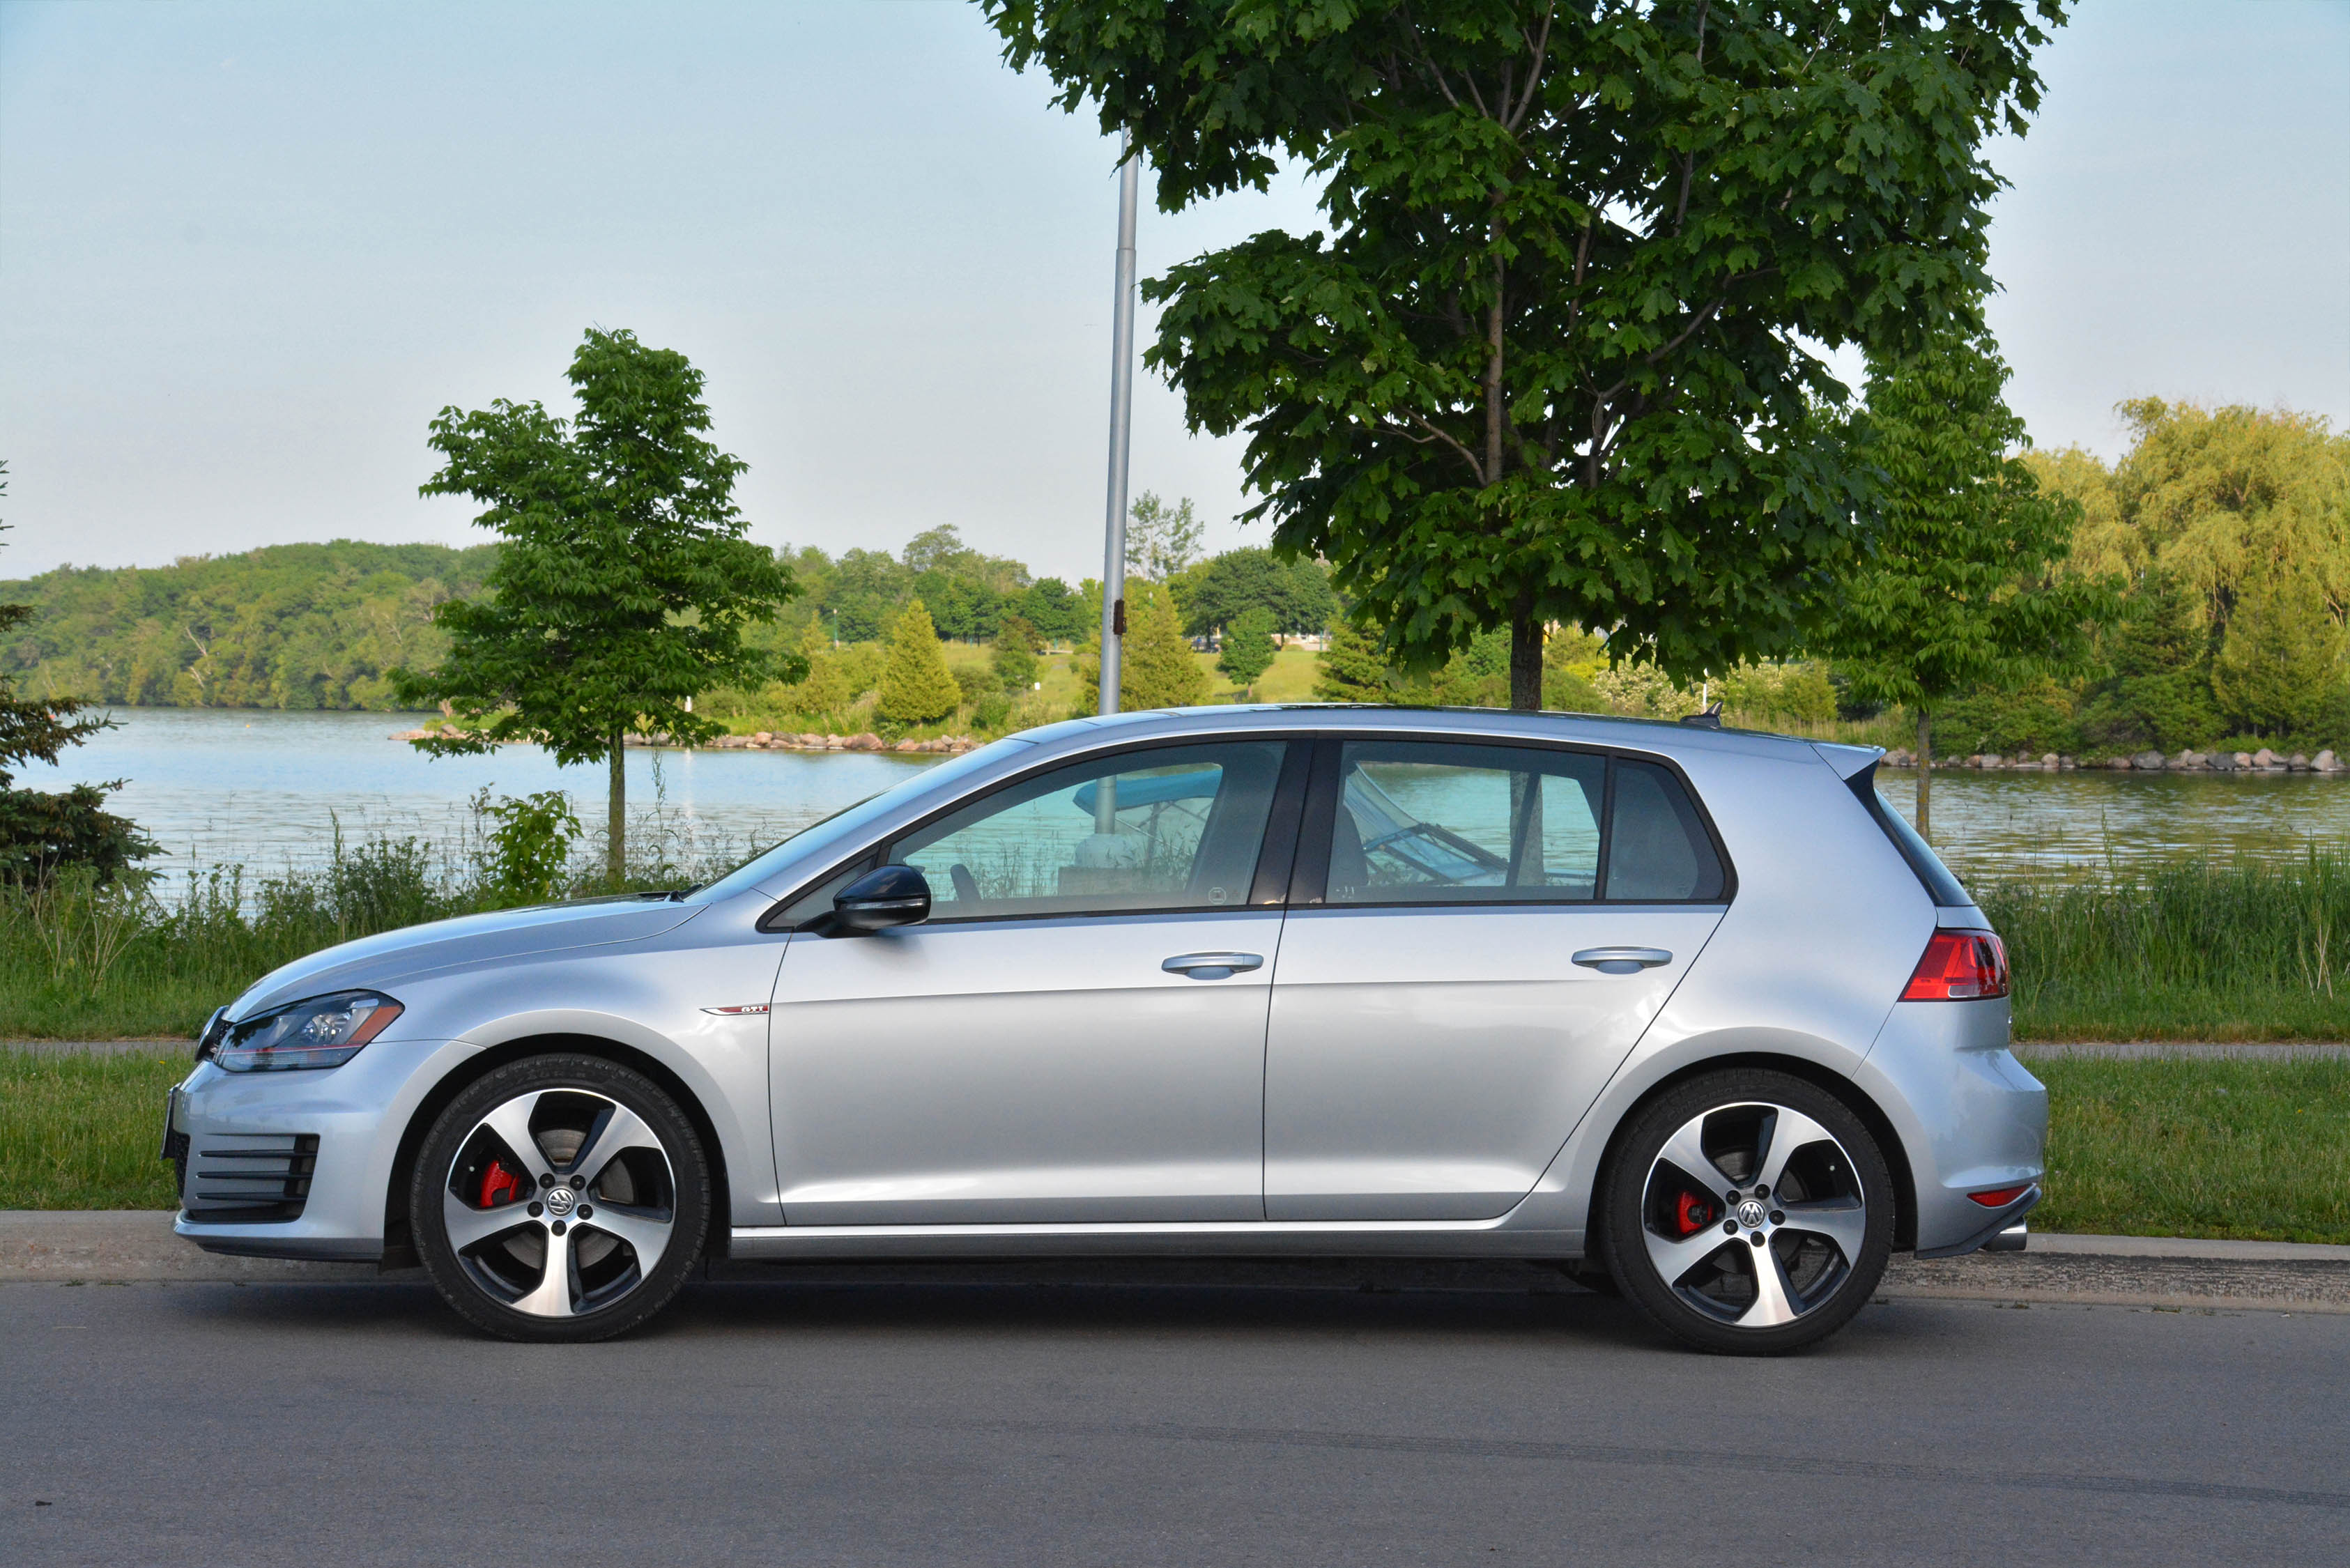 Golf gti 1998 2017 volkswagen golf gti long term test and review wheels ca